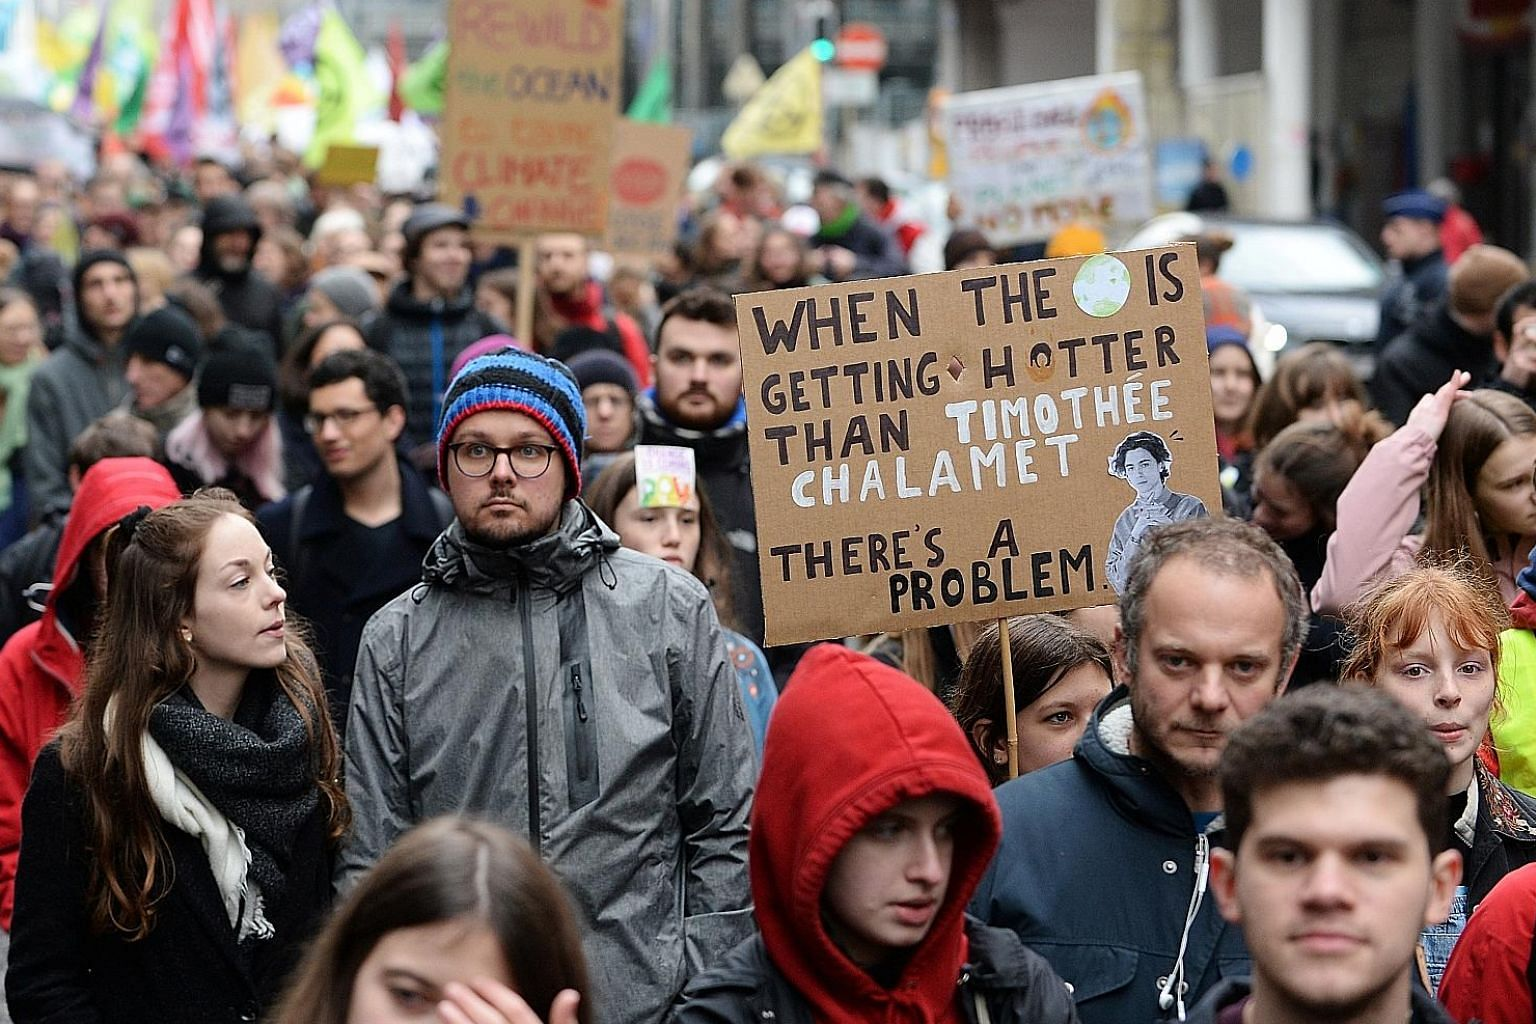 Demonstrators at a rally for climate change action in Brussels, Belgium, earlier this month. Around the world, the number of climate activists is swelling and their voices are growing louder. In March last year, more than a million students in hundre